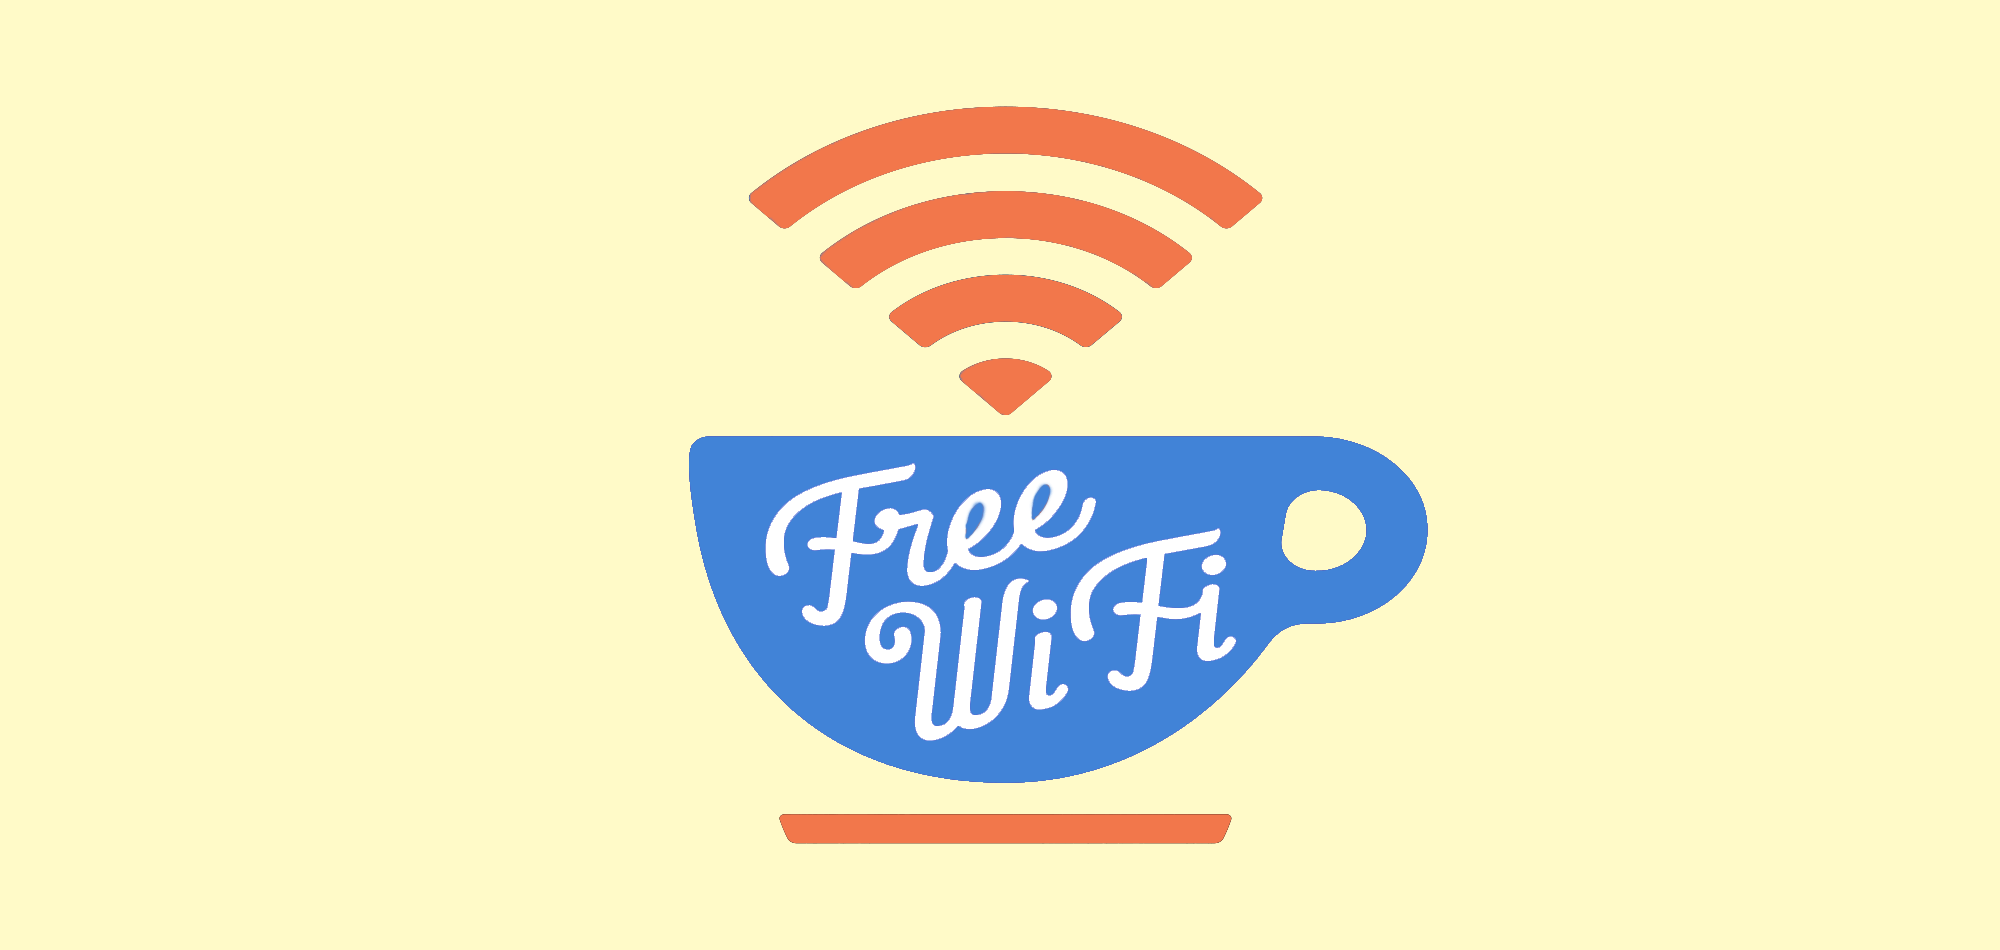 Should I be Offering Guest WiFi? 4 Surprising Benefits for Your Business